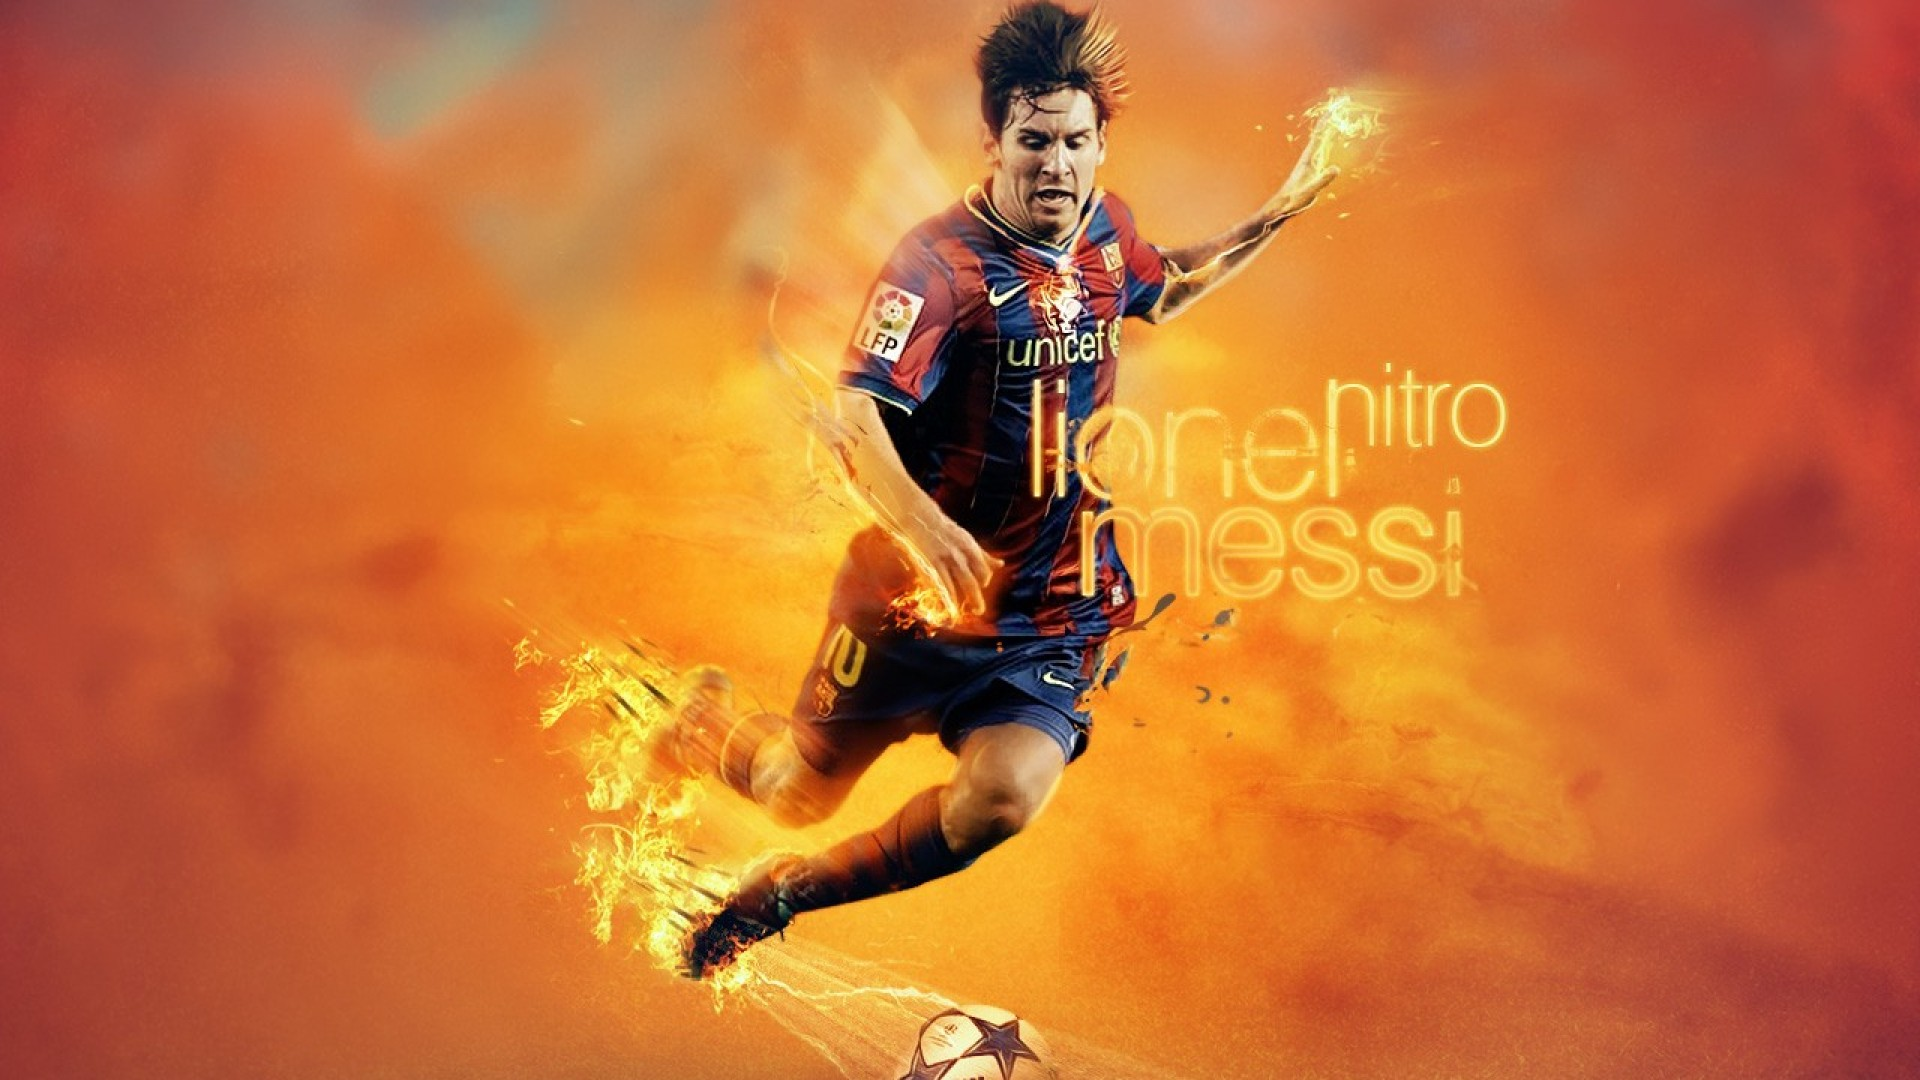 Messi Hd Wallpapers 1080p , HD Wallpaper & Backgrounds